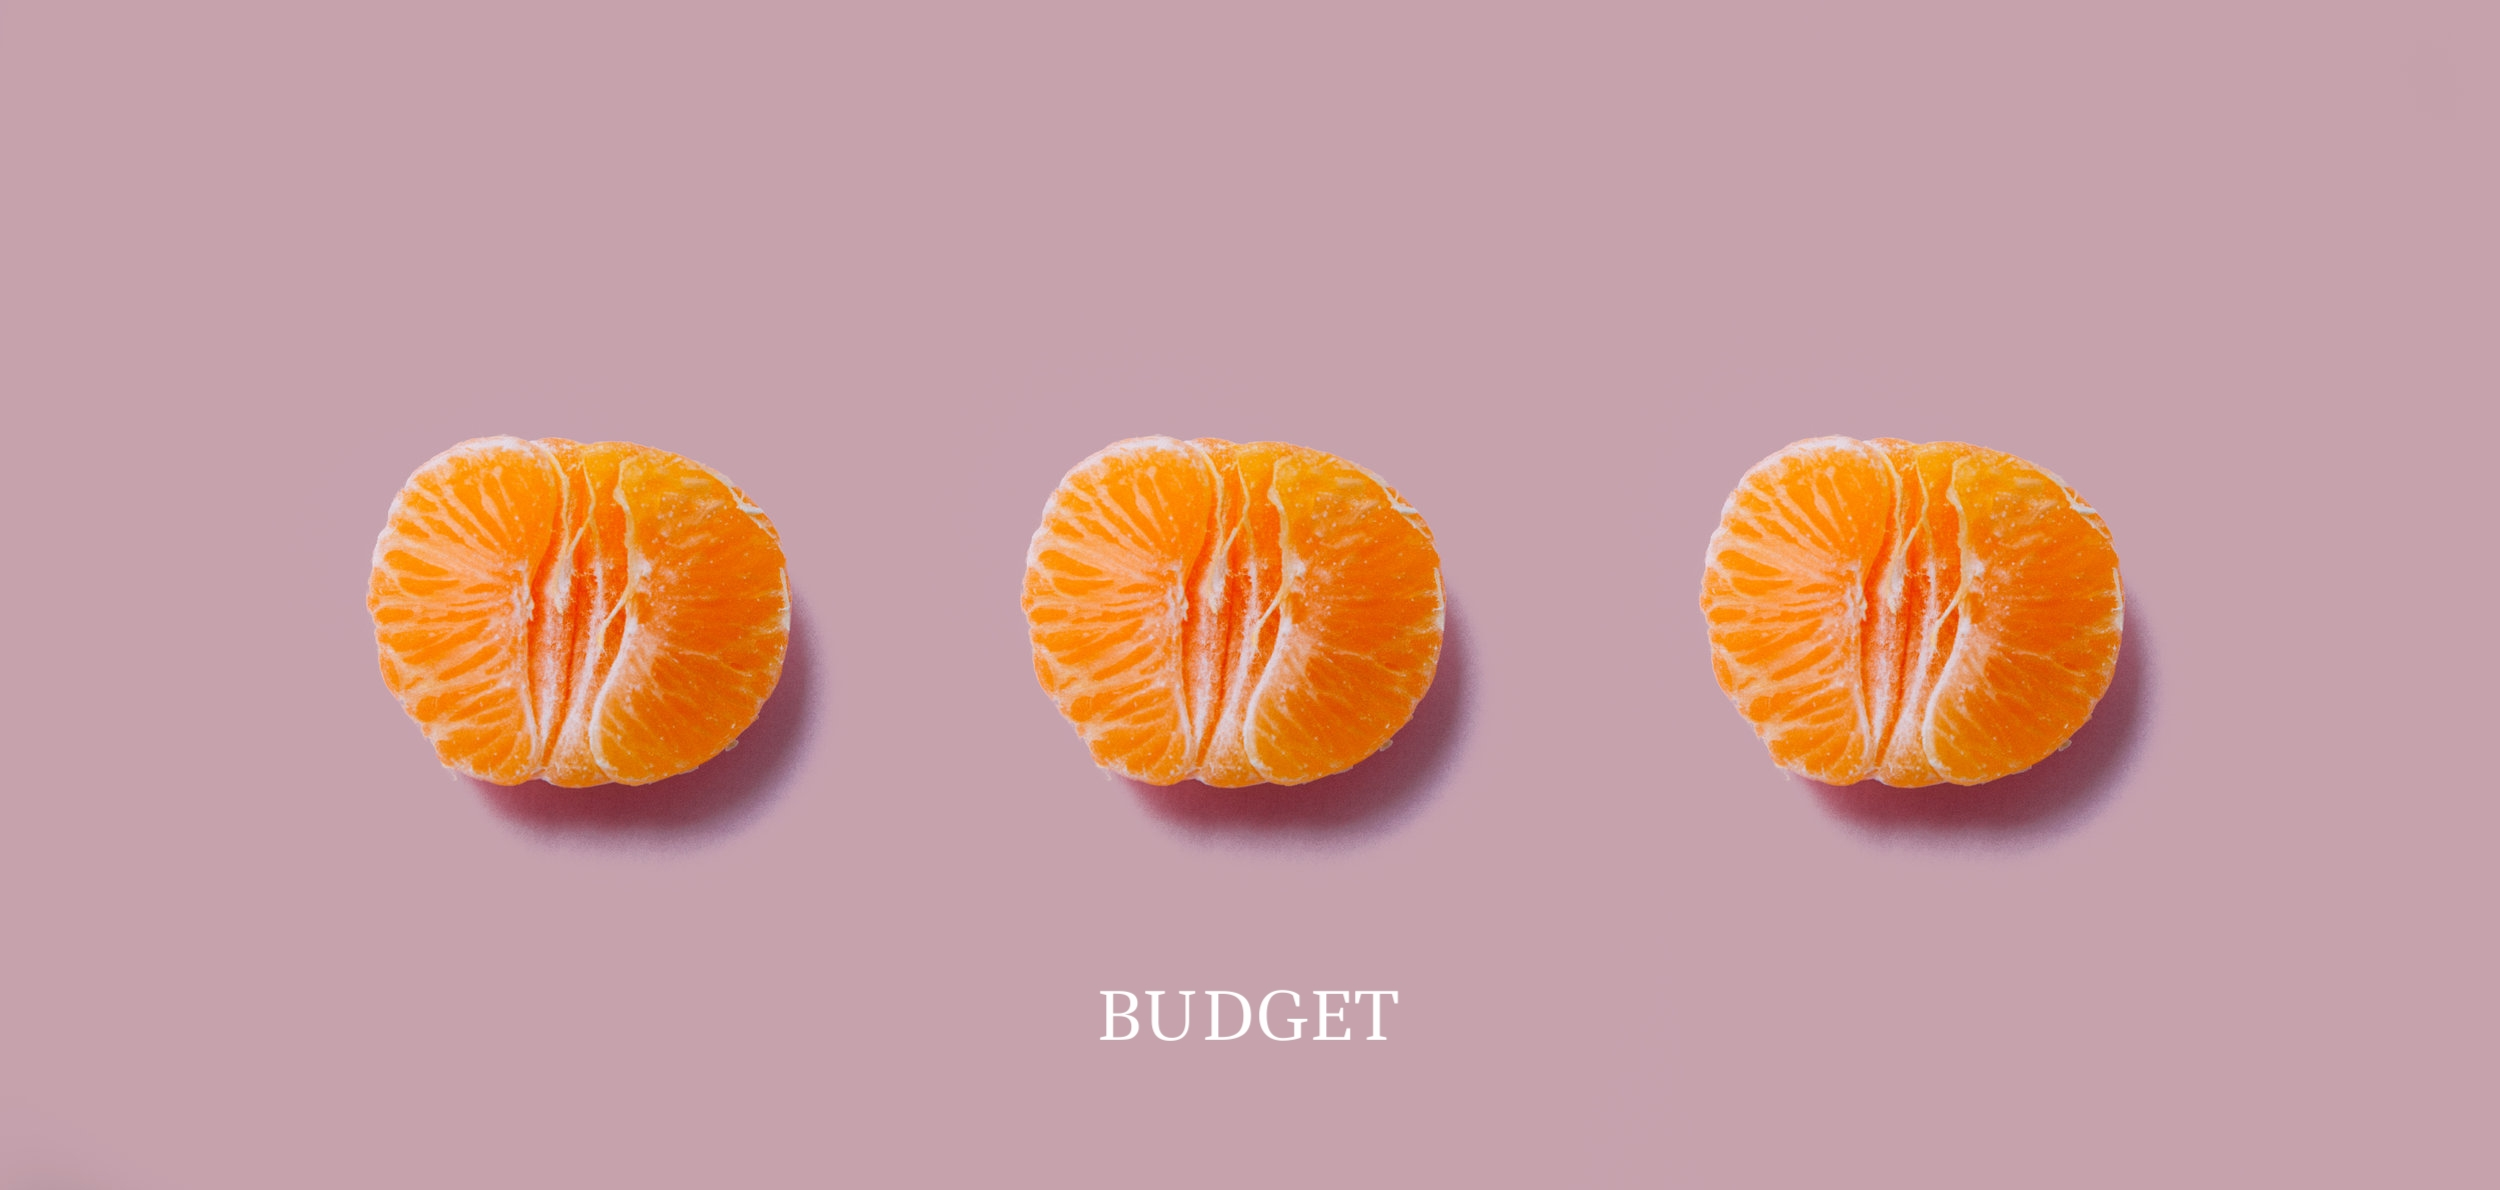 budgeting.png